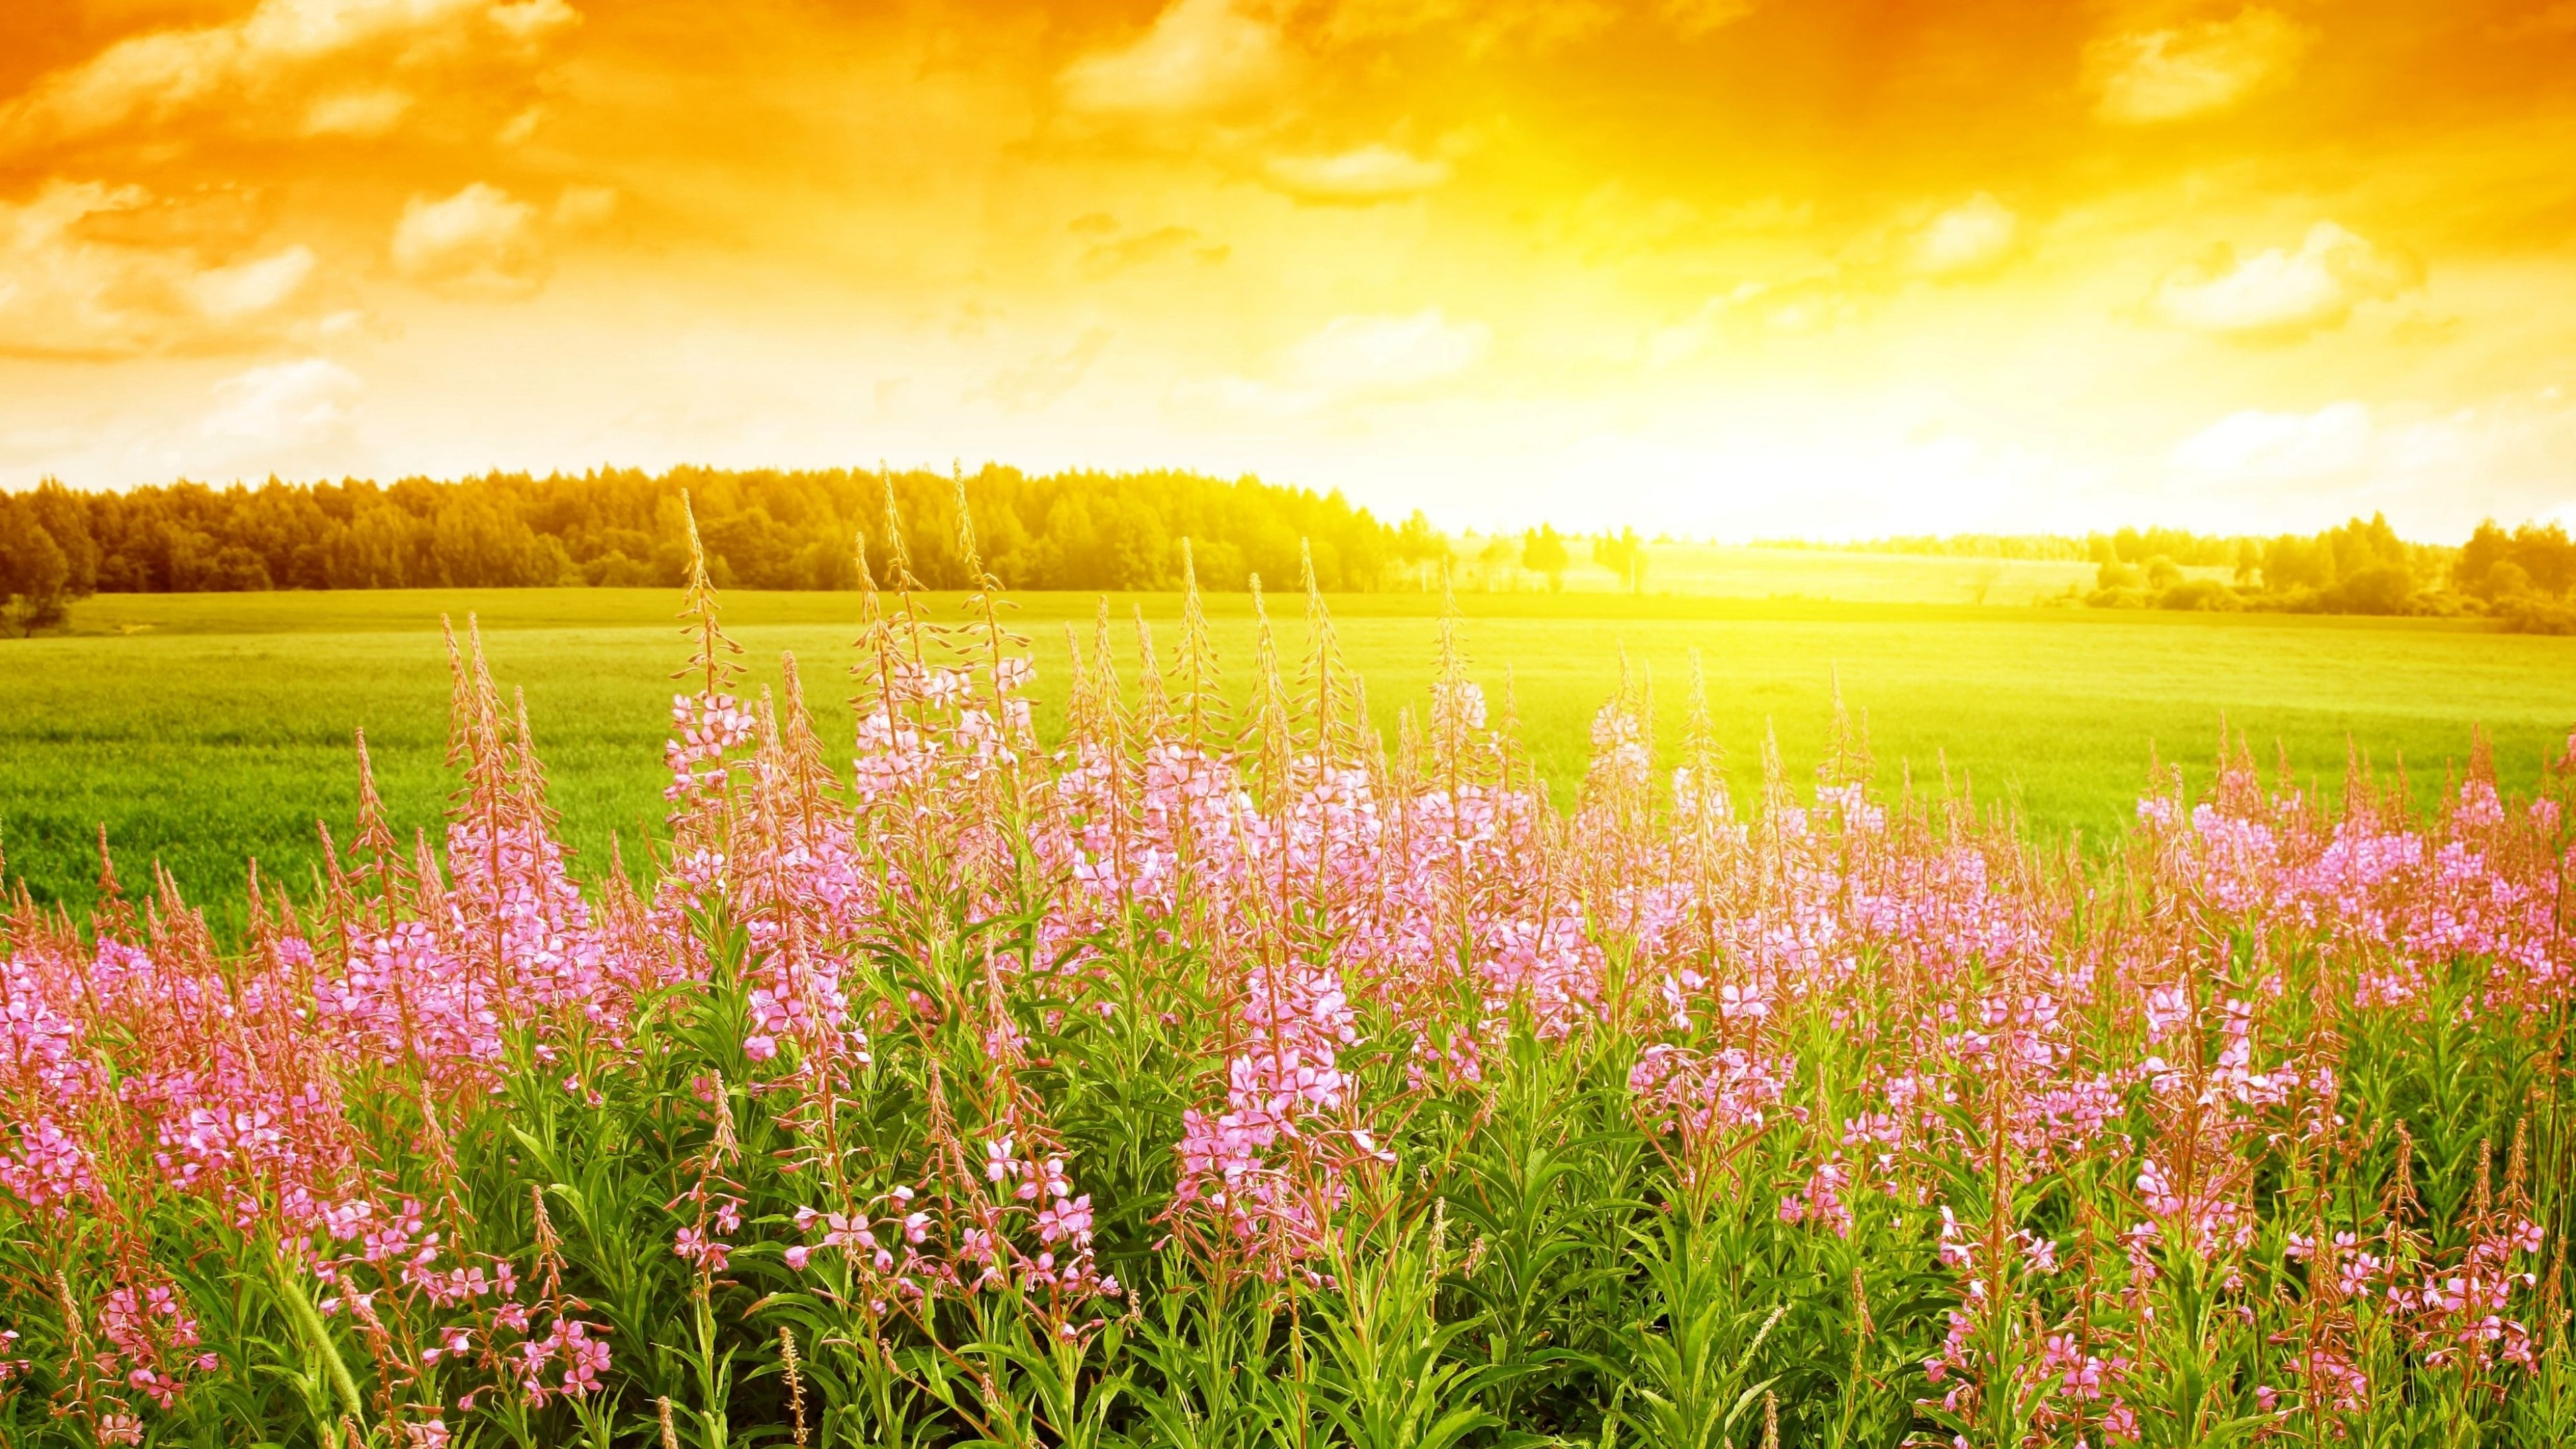 Wallpaper Sky 4k Hd Wallpaper Sunset Field Flowers Nature 647